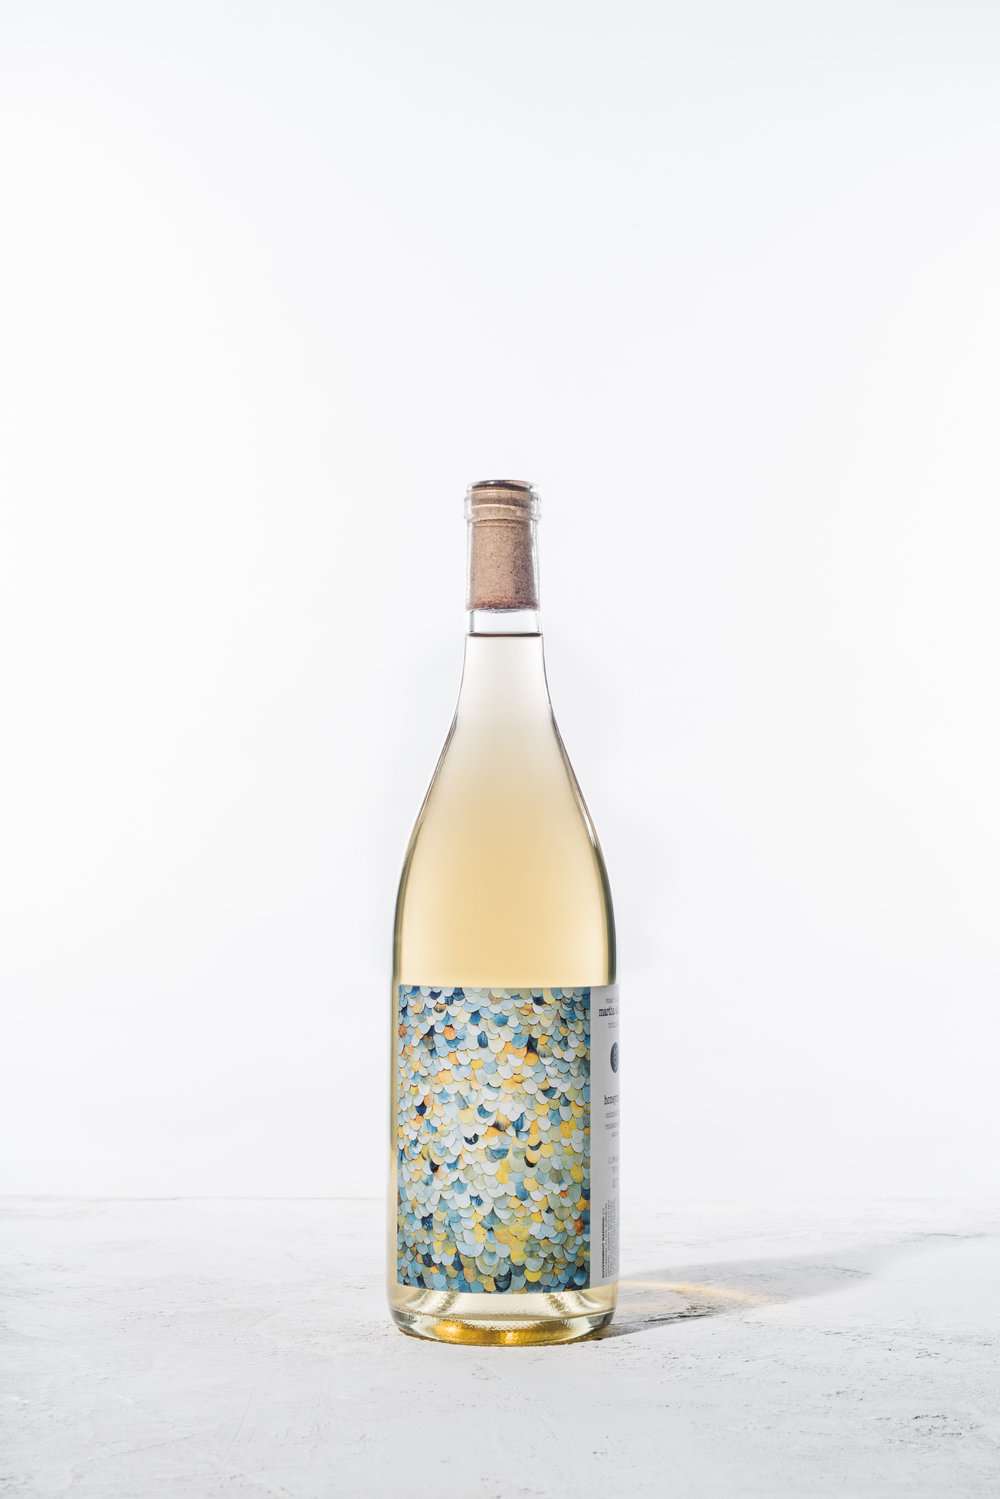 2017 Honeymoon (65% French Colombard, 35% Roussanne) | $33